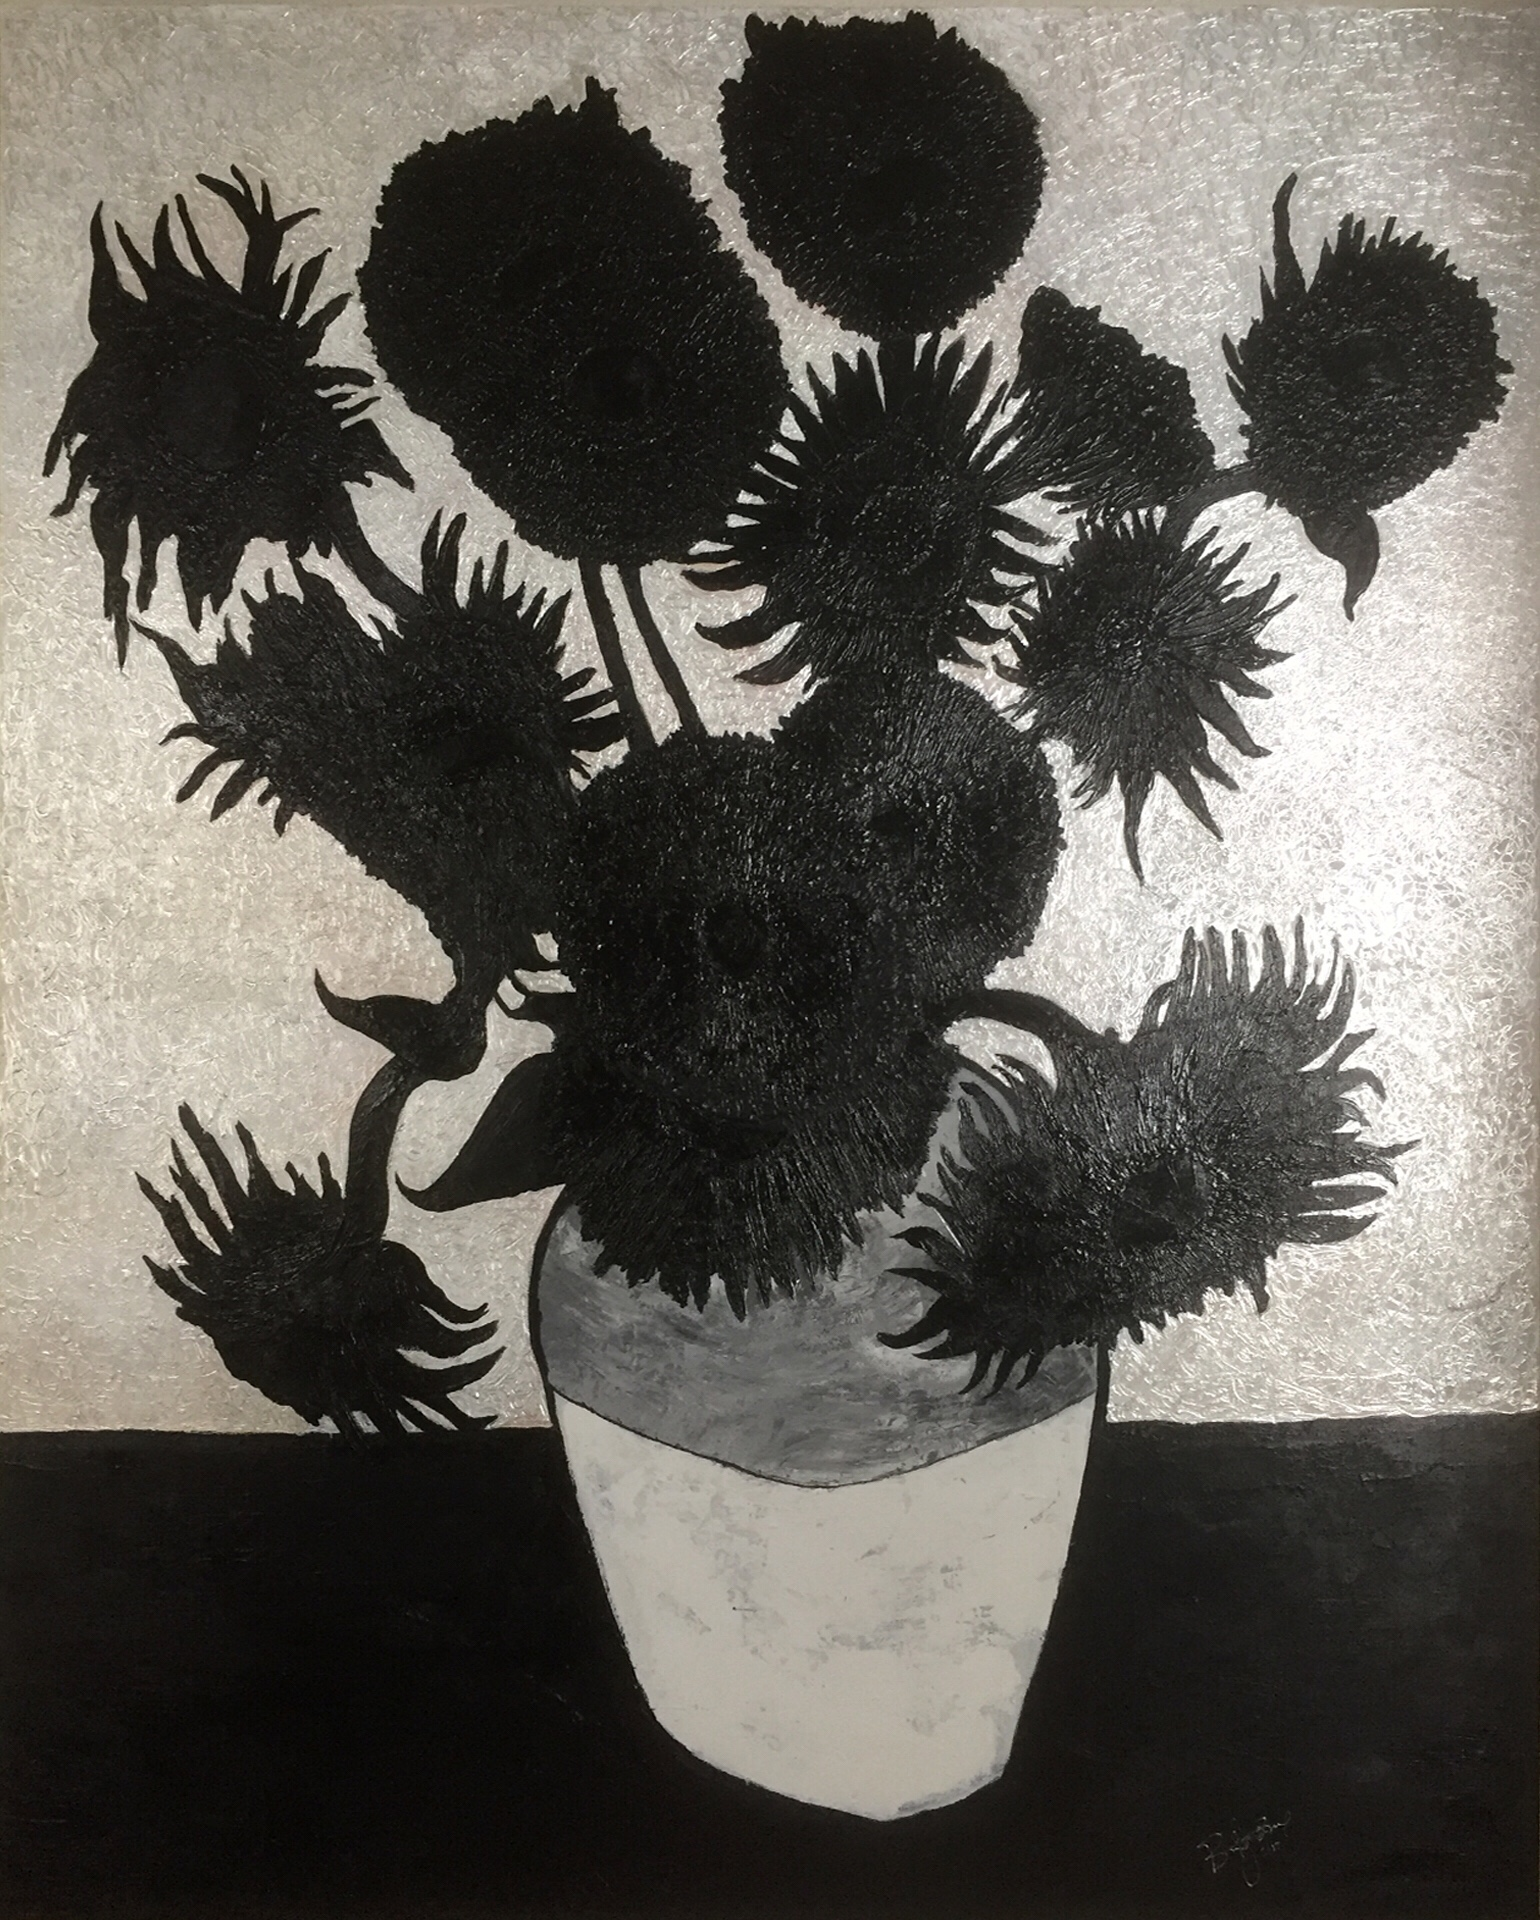 brent jones art, brent jones, denver art, acrylic art, contemporary art, local art, brent jones denver, sunflowers, black and white, van gogh, van gogh sunflowers